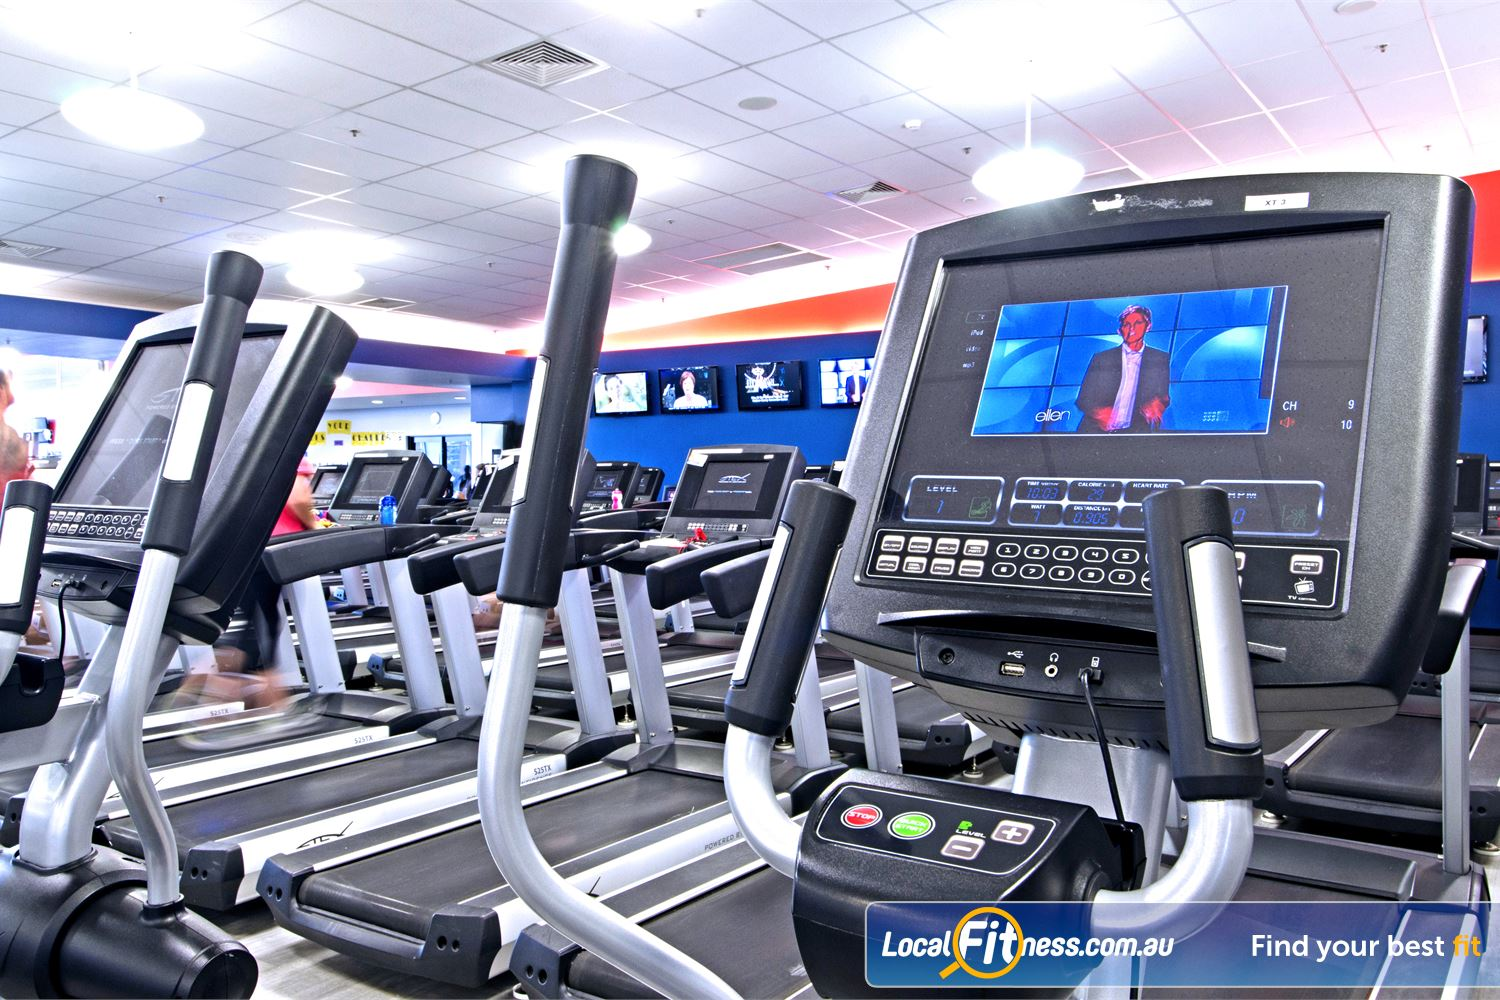 Goodlife Health Clubs Near Zillmere Tune into your favourite shows on your personalised LCD screen or cardio theatre.